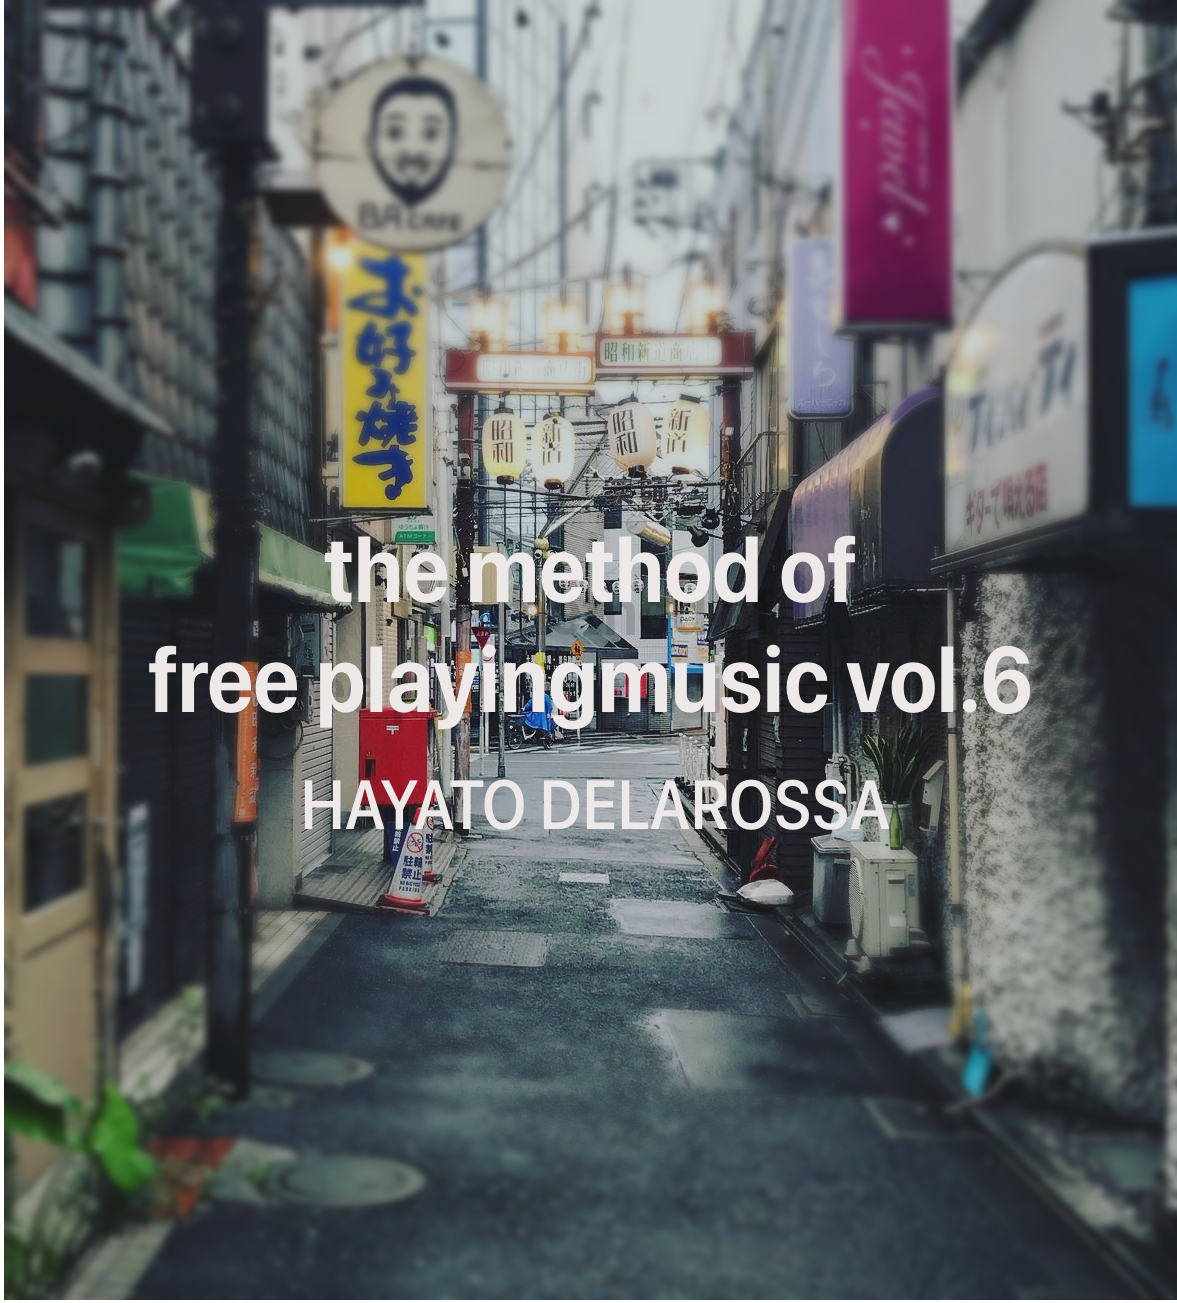 NEW MIX UPLOAD!! 「the method of free playing music vol.6」